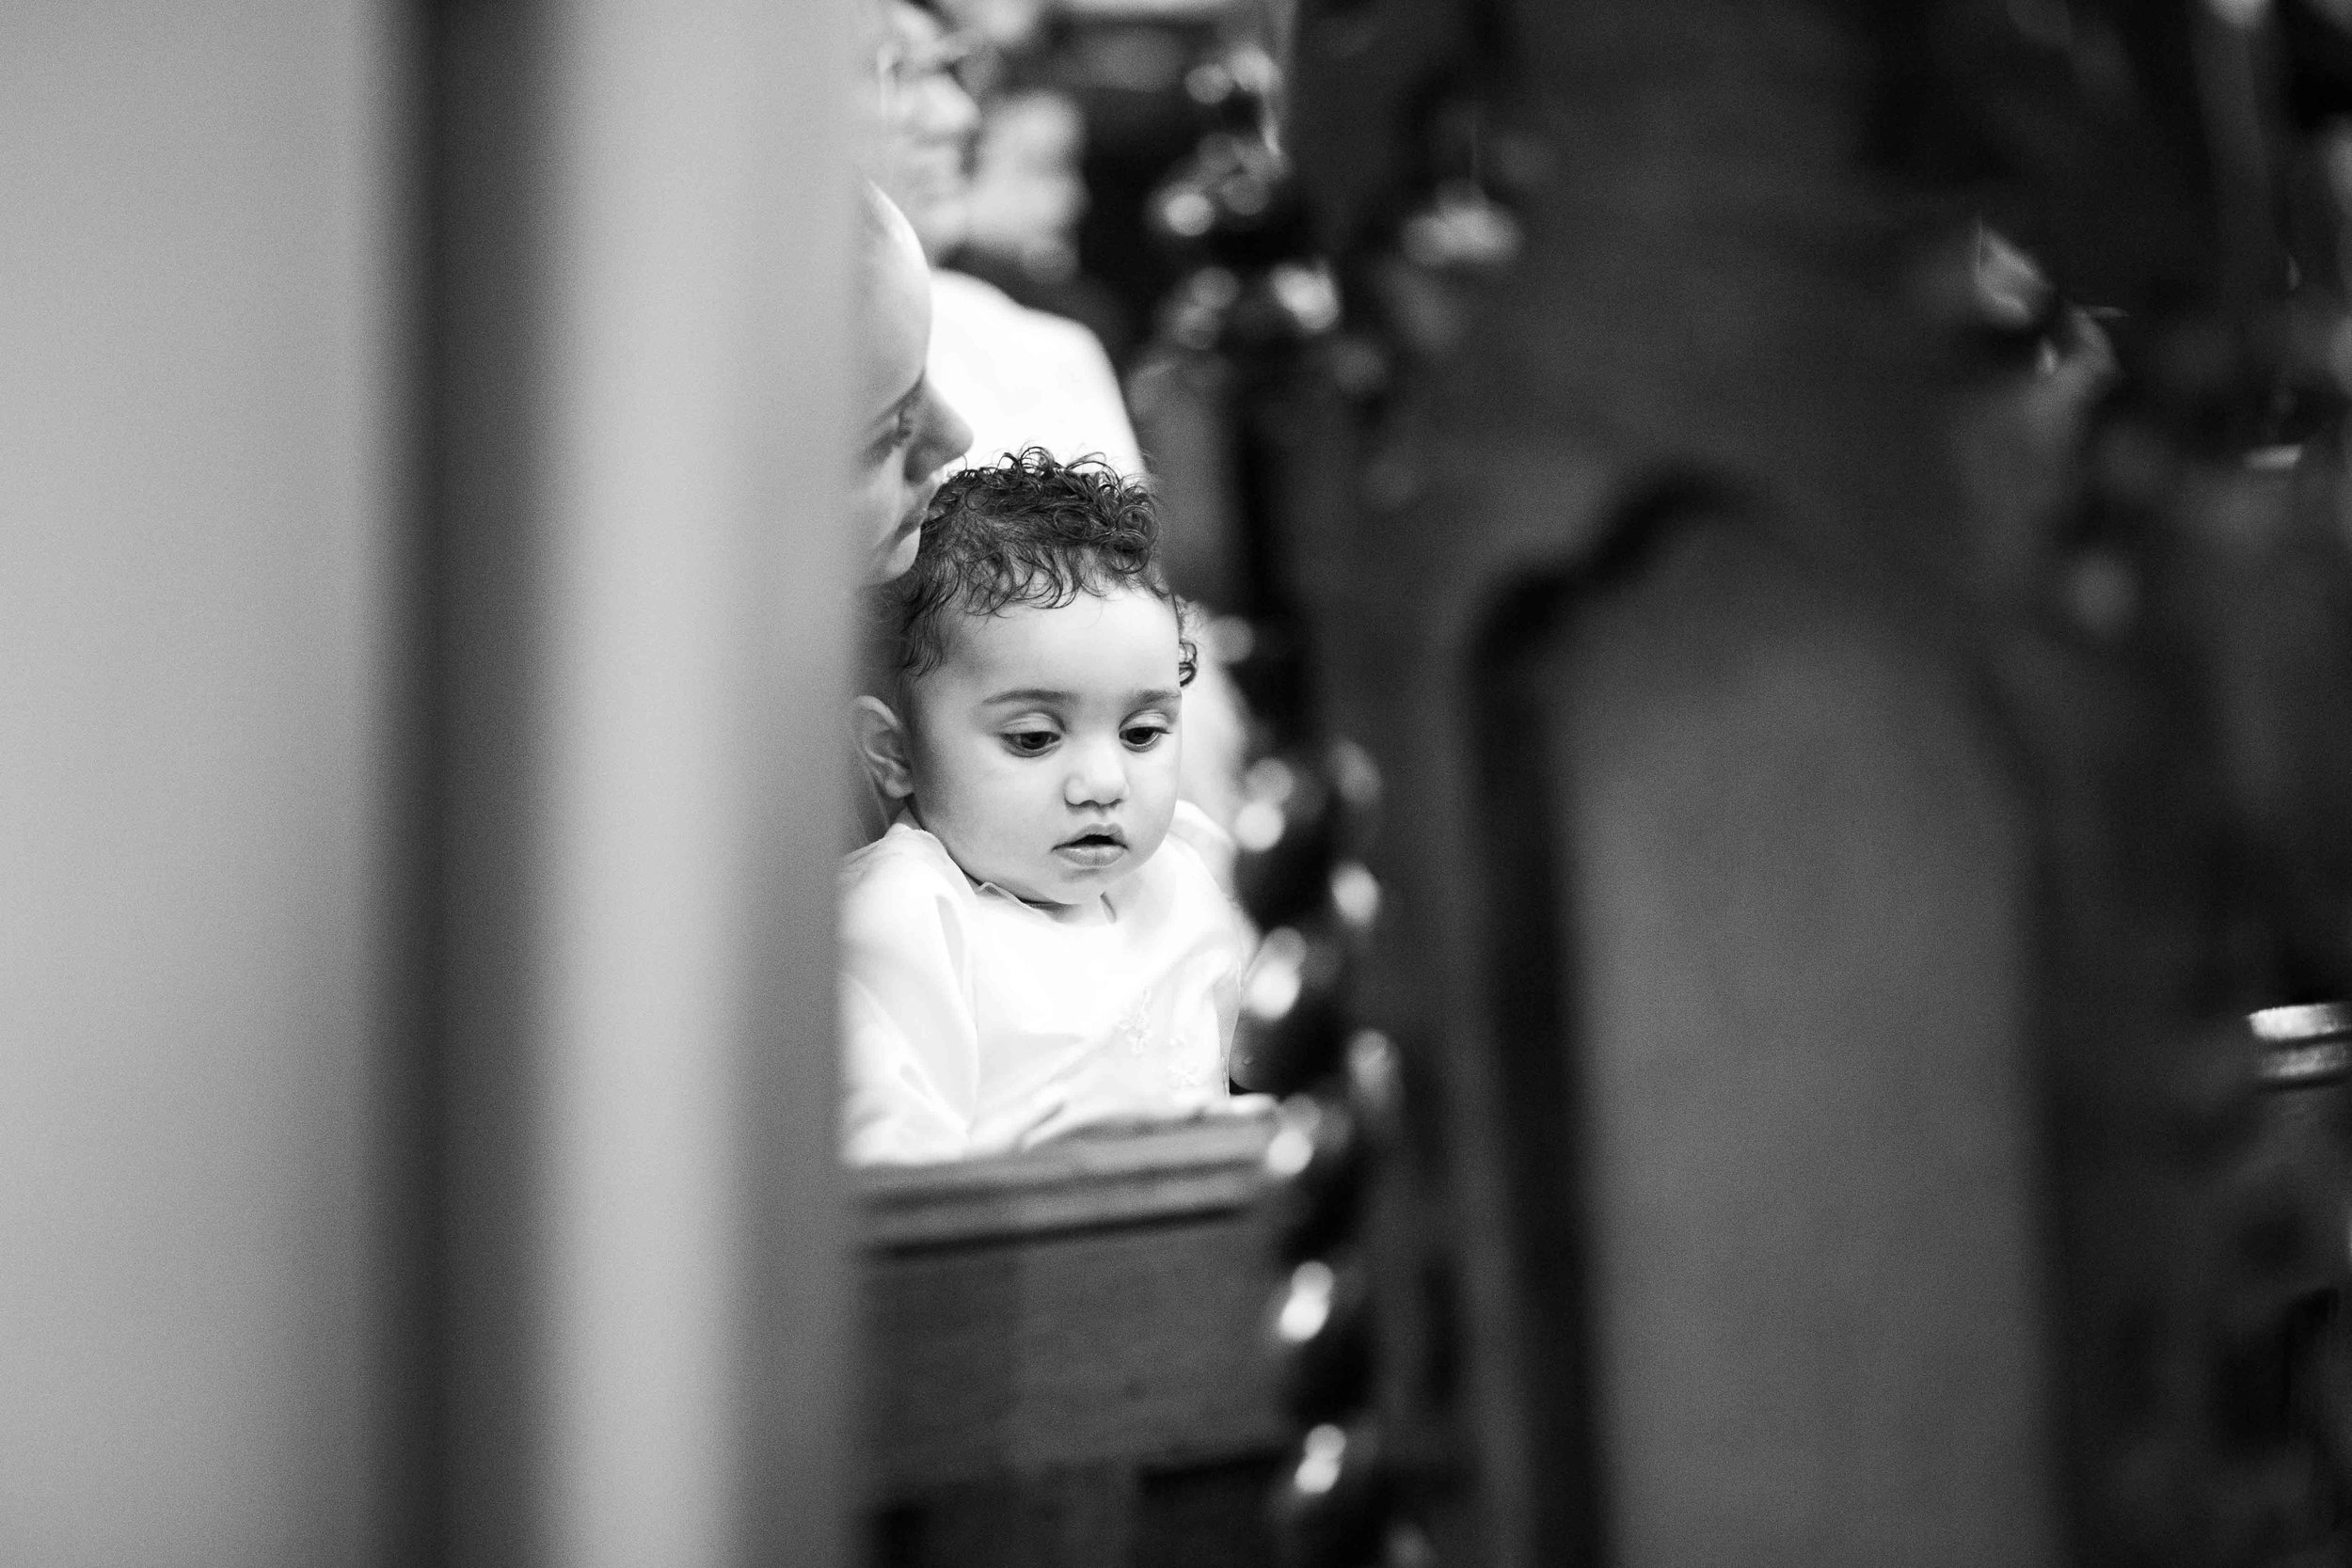 Lea-cooper-photography-christening-photographer-baptism-wolverhampton-wednesbury-walsall-willenhall-dudley-church-chapel-event-photography-14.jpg